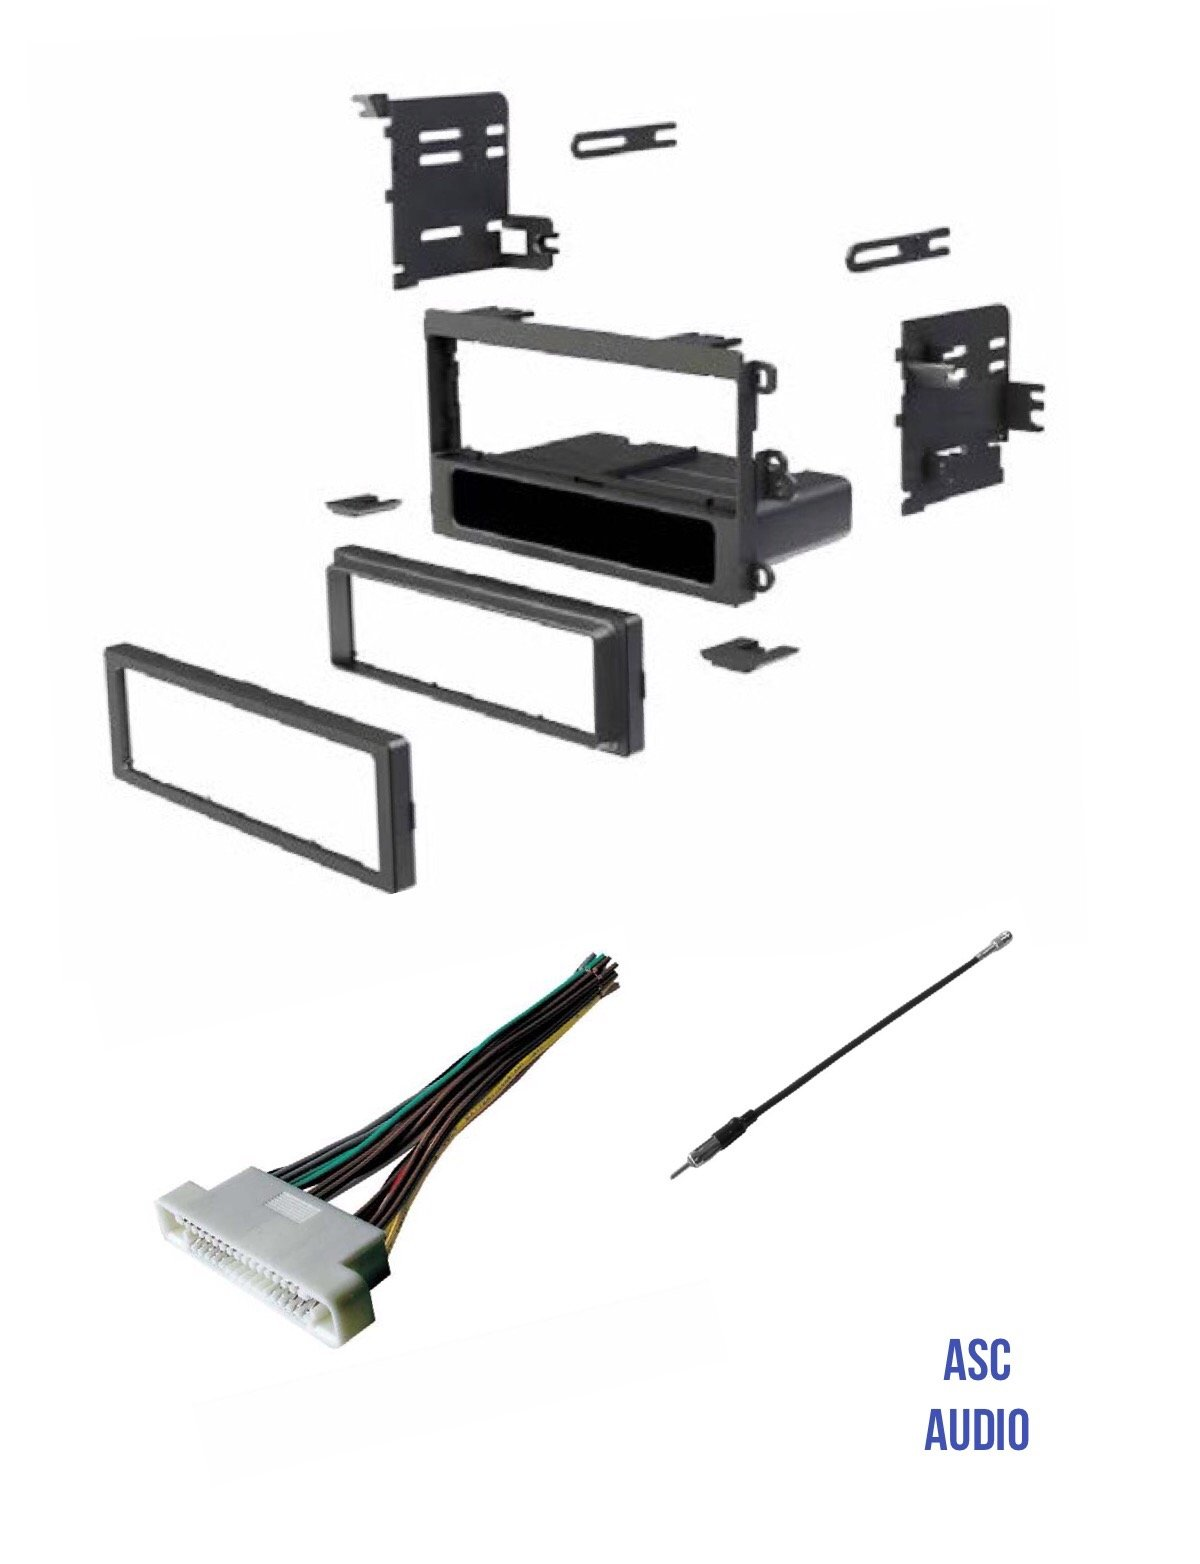 hight resolution of get quotations asc audio car stereo radio dash kit wire harness and antenna adapter to install